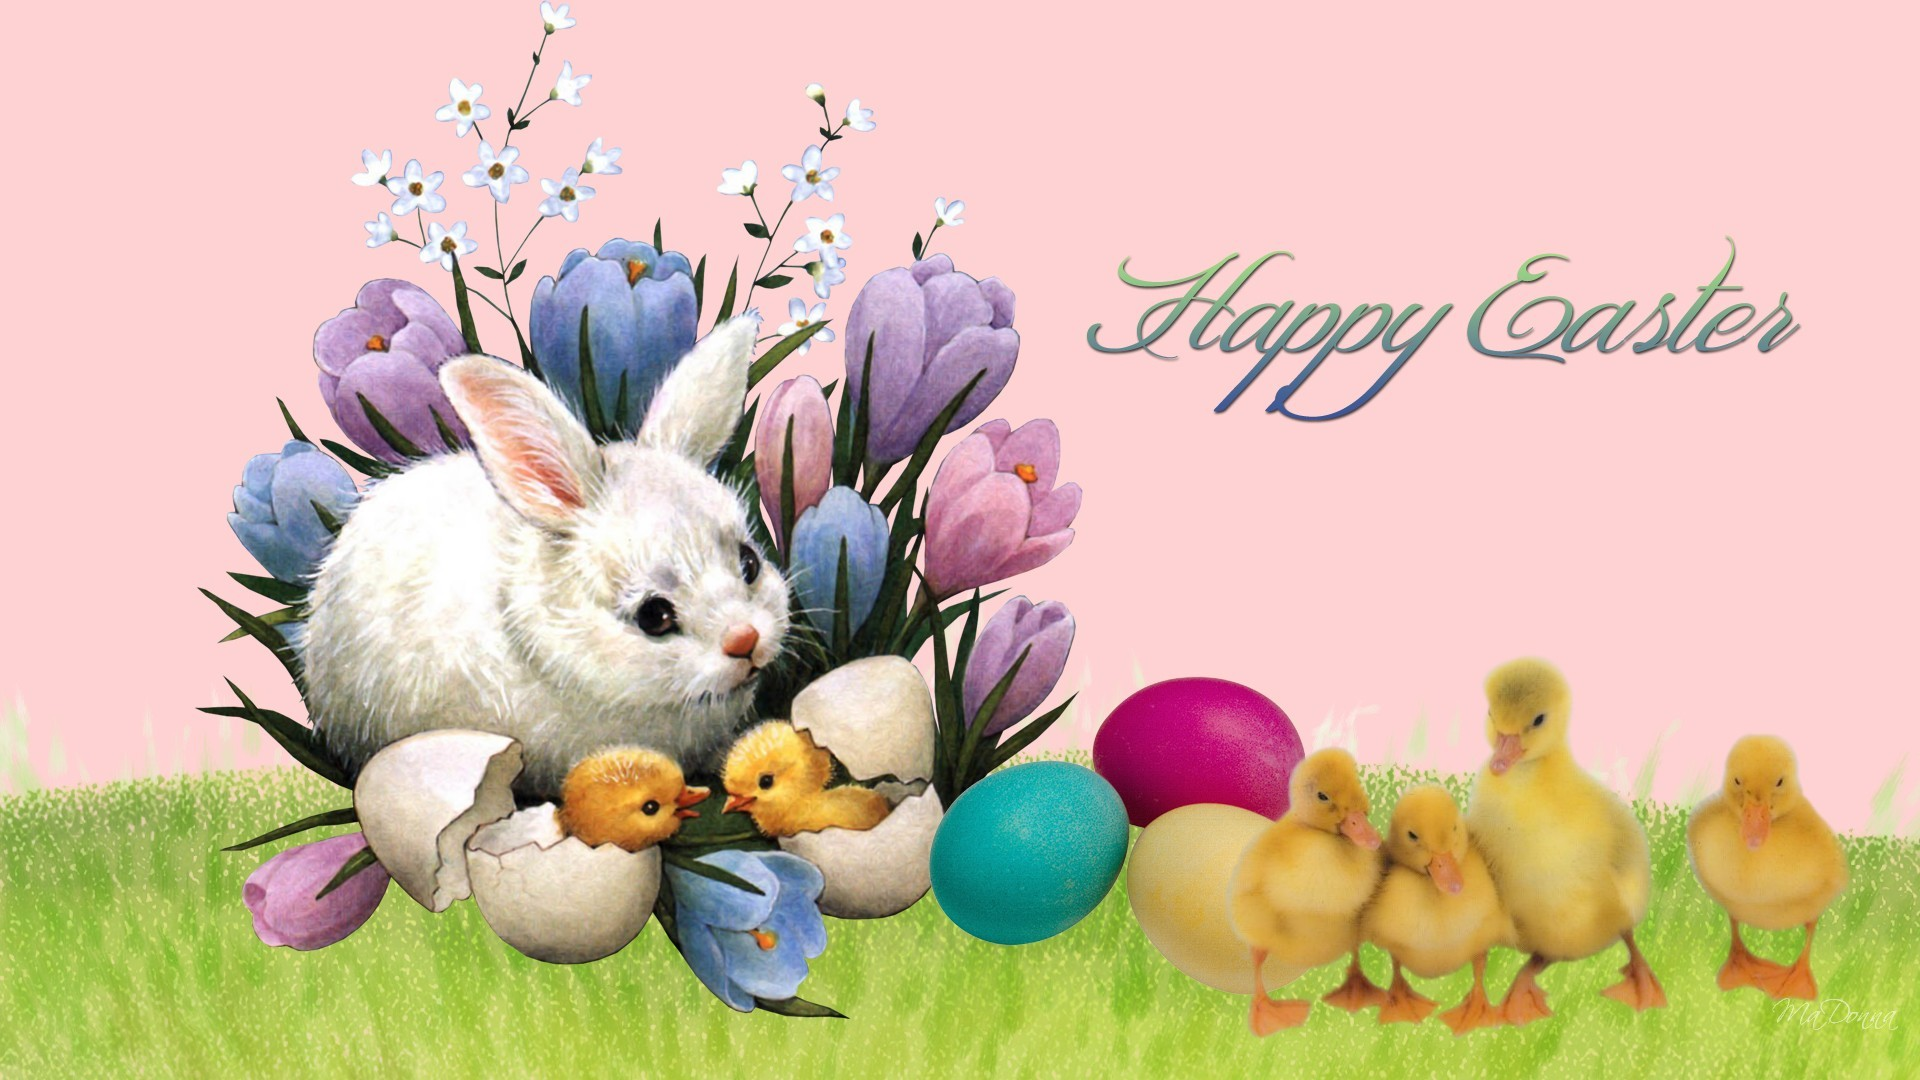 free wallpaper easter bunny rabbits | Easter Bunny Friends